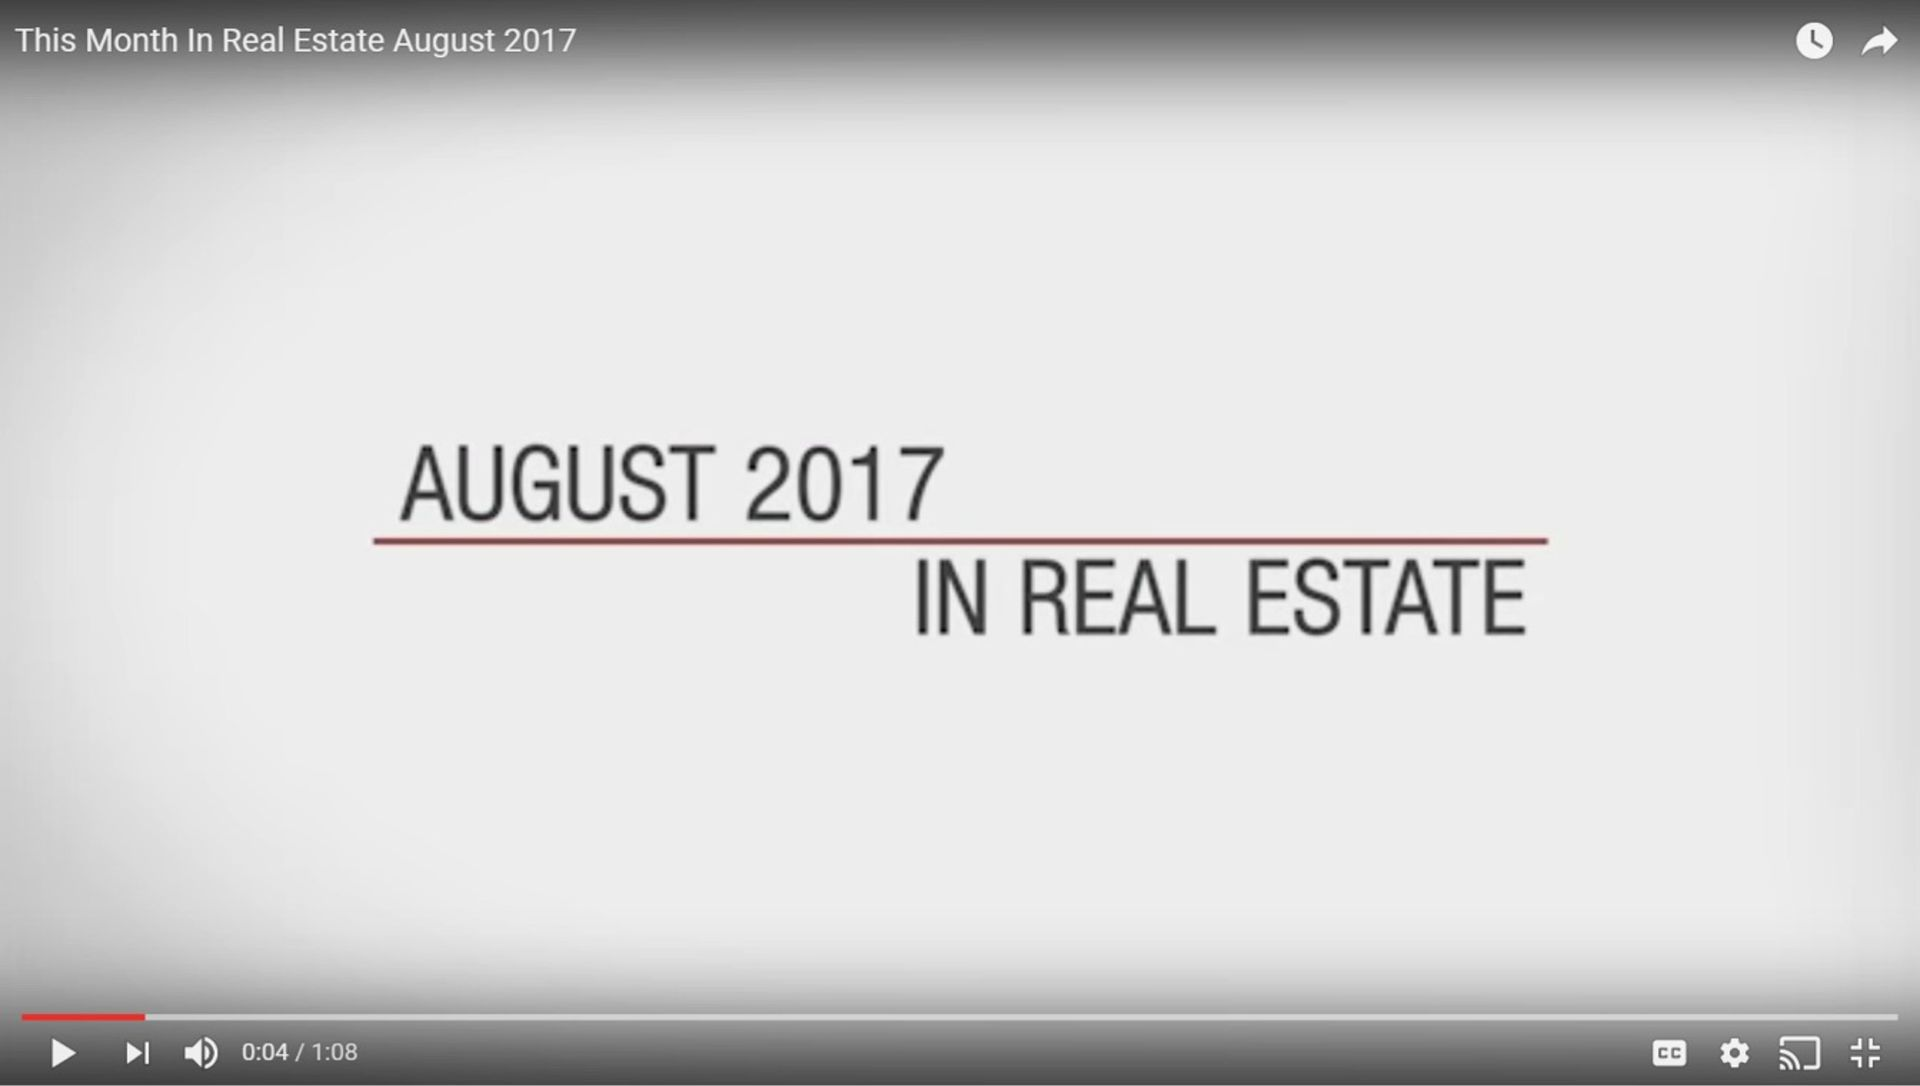 This Month in Real Estate – August 2017